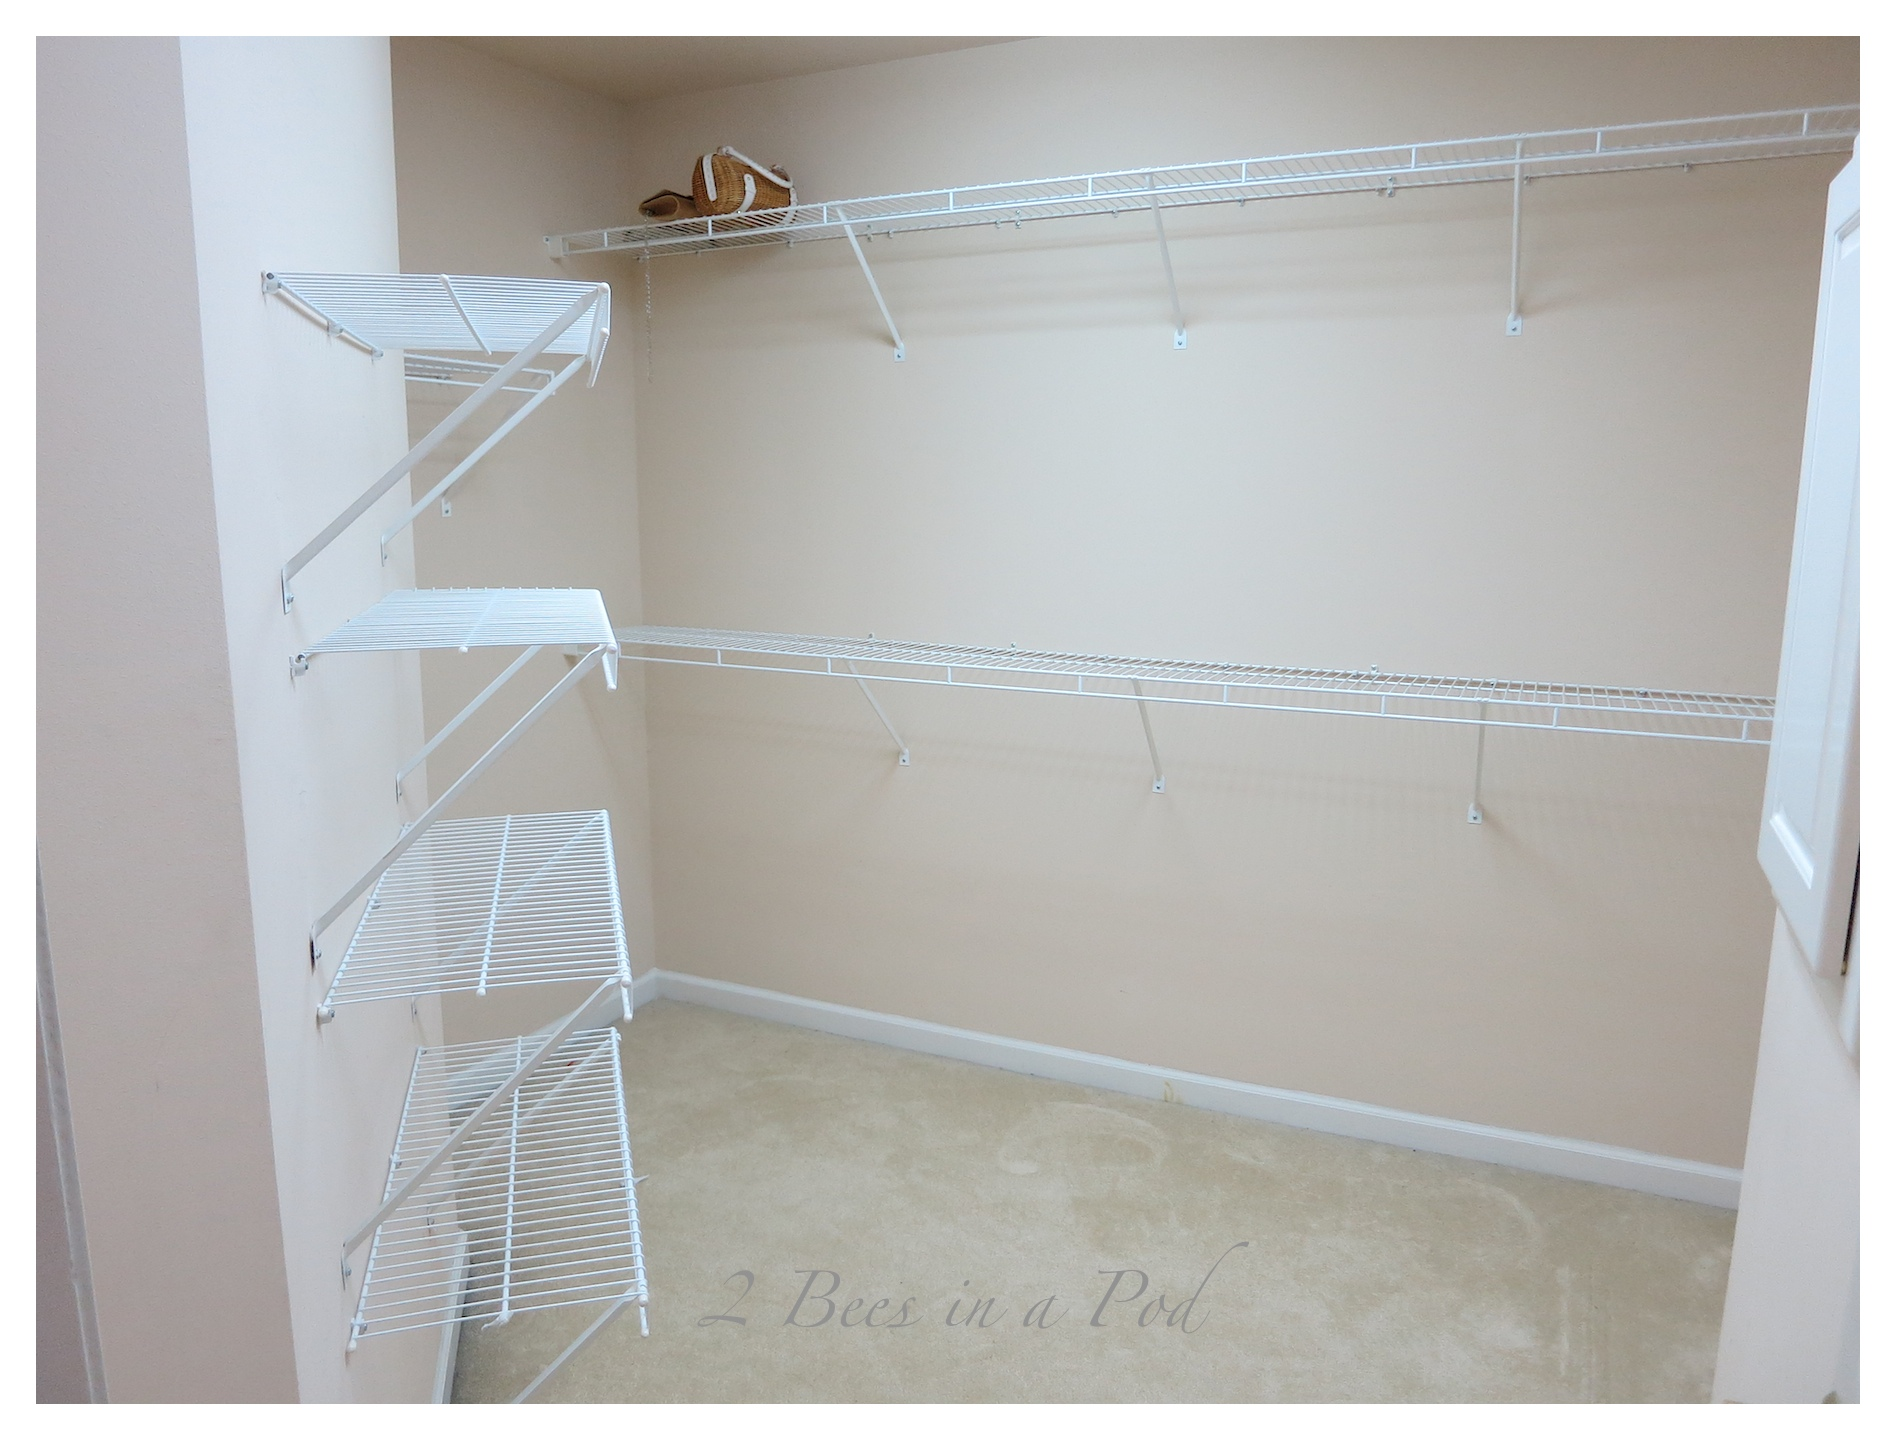 Master bedroom closet makeover. See how this disorganized and messy closet was completely transformed with custom shelving, crown moulding and storage.